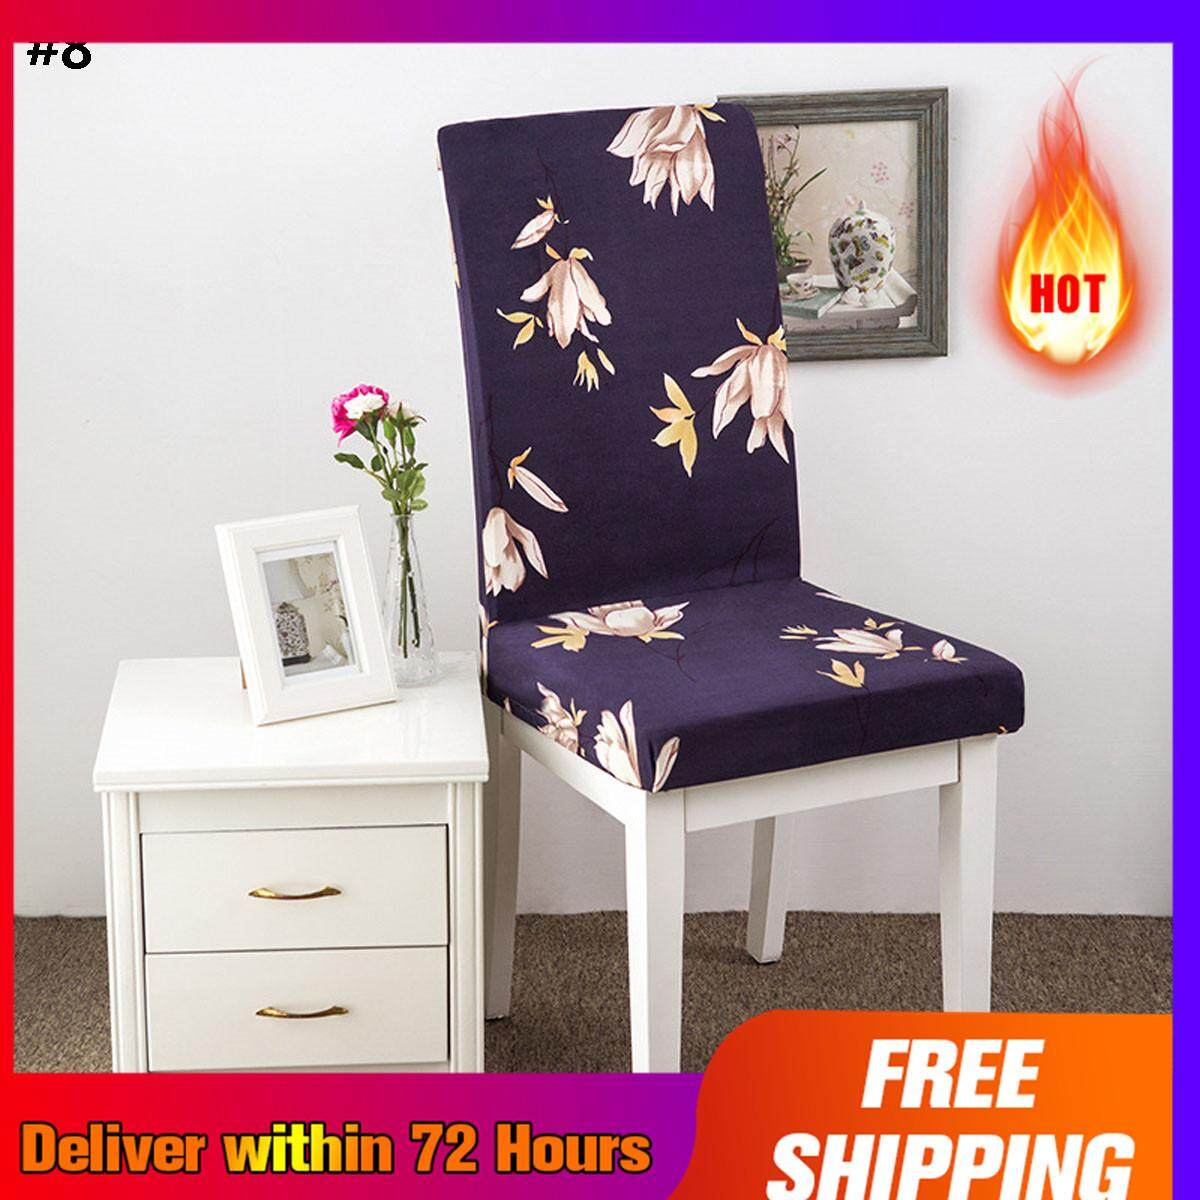 【free Shipping + Super Deal + Limited Offer】kcasa Wx-Pp6 Elegant Flower Landscape Elastic Stretch Chair Seat Cover Dining Room Home Wedding Decor By Teamwin.